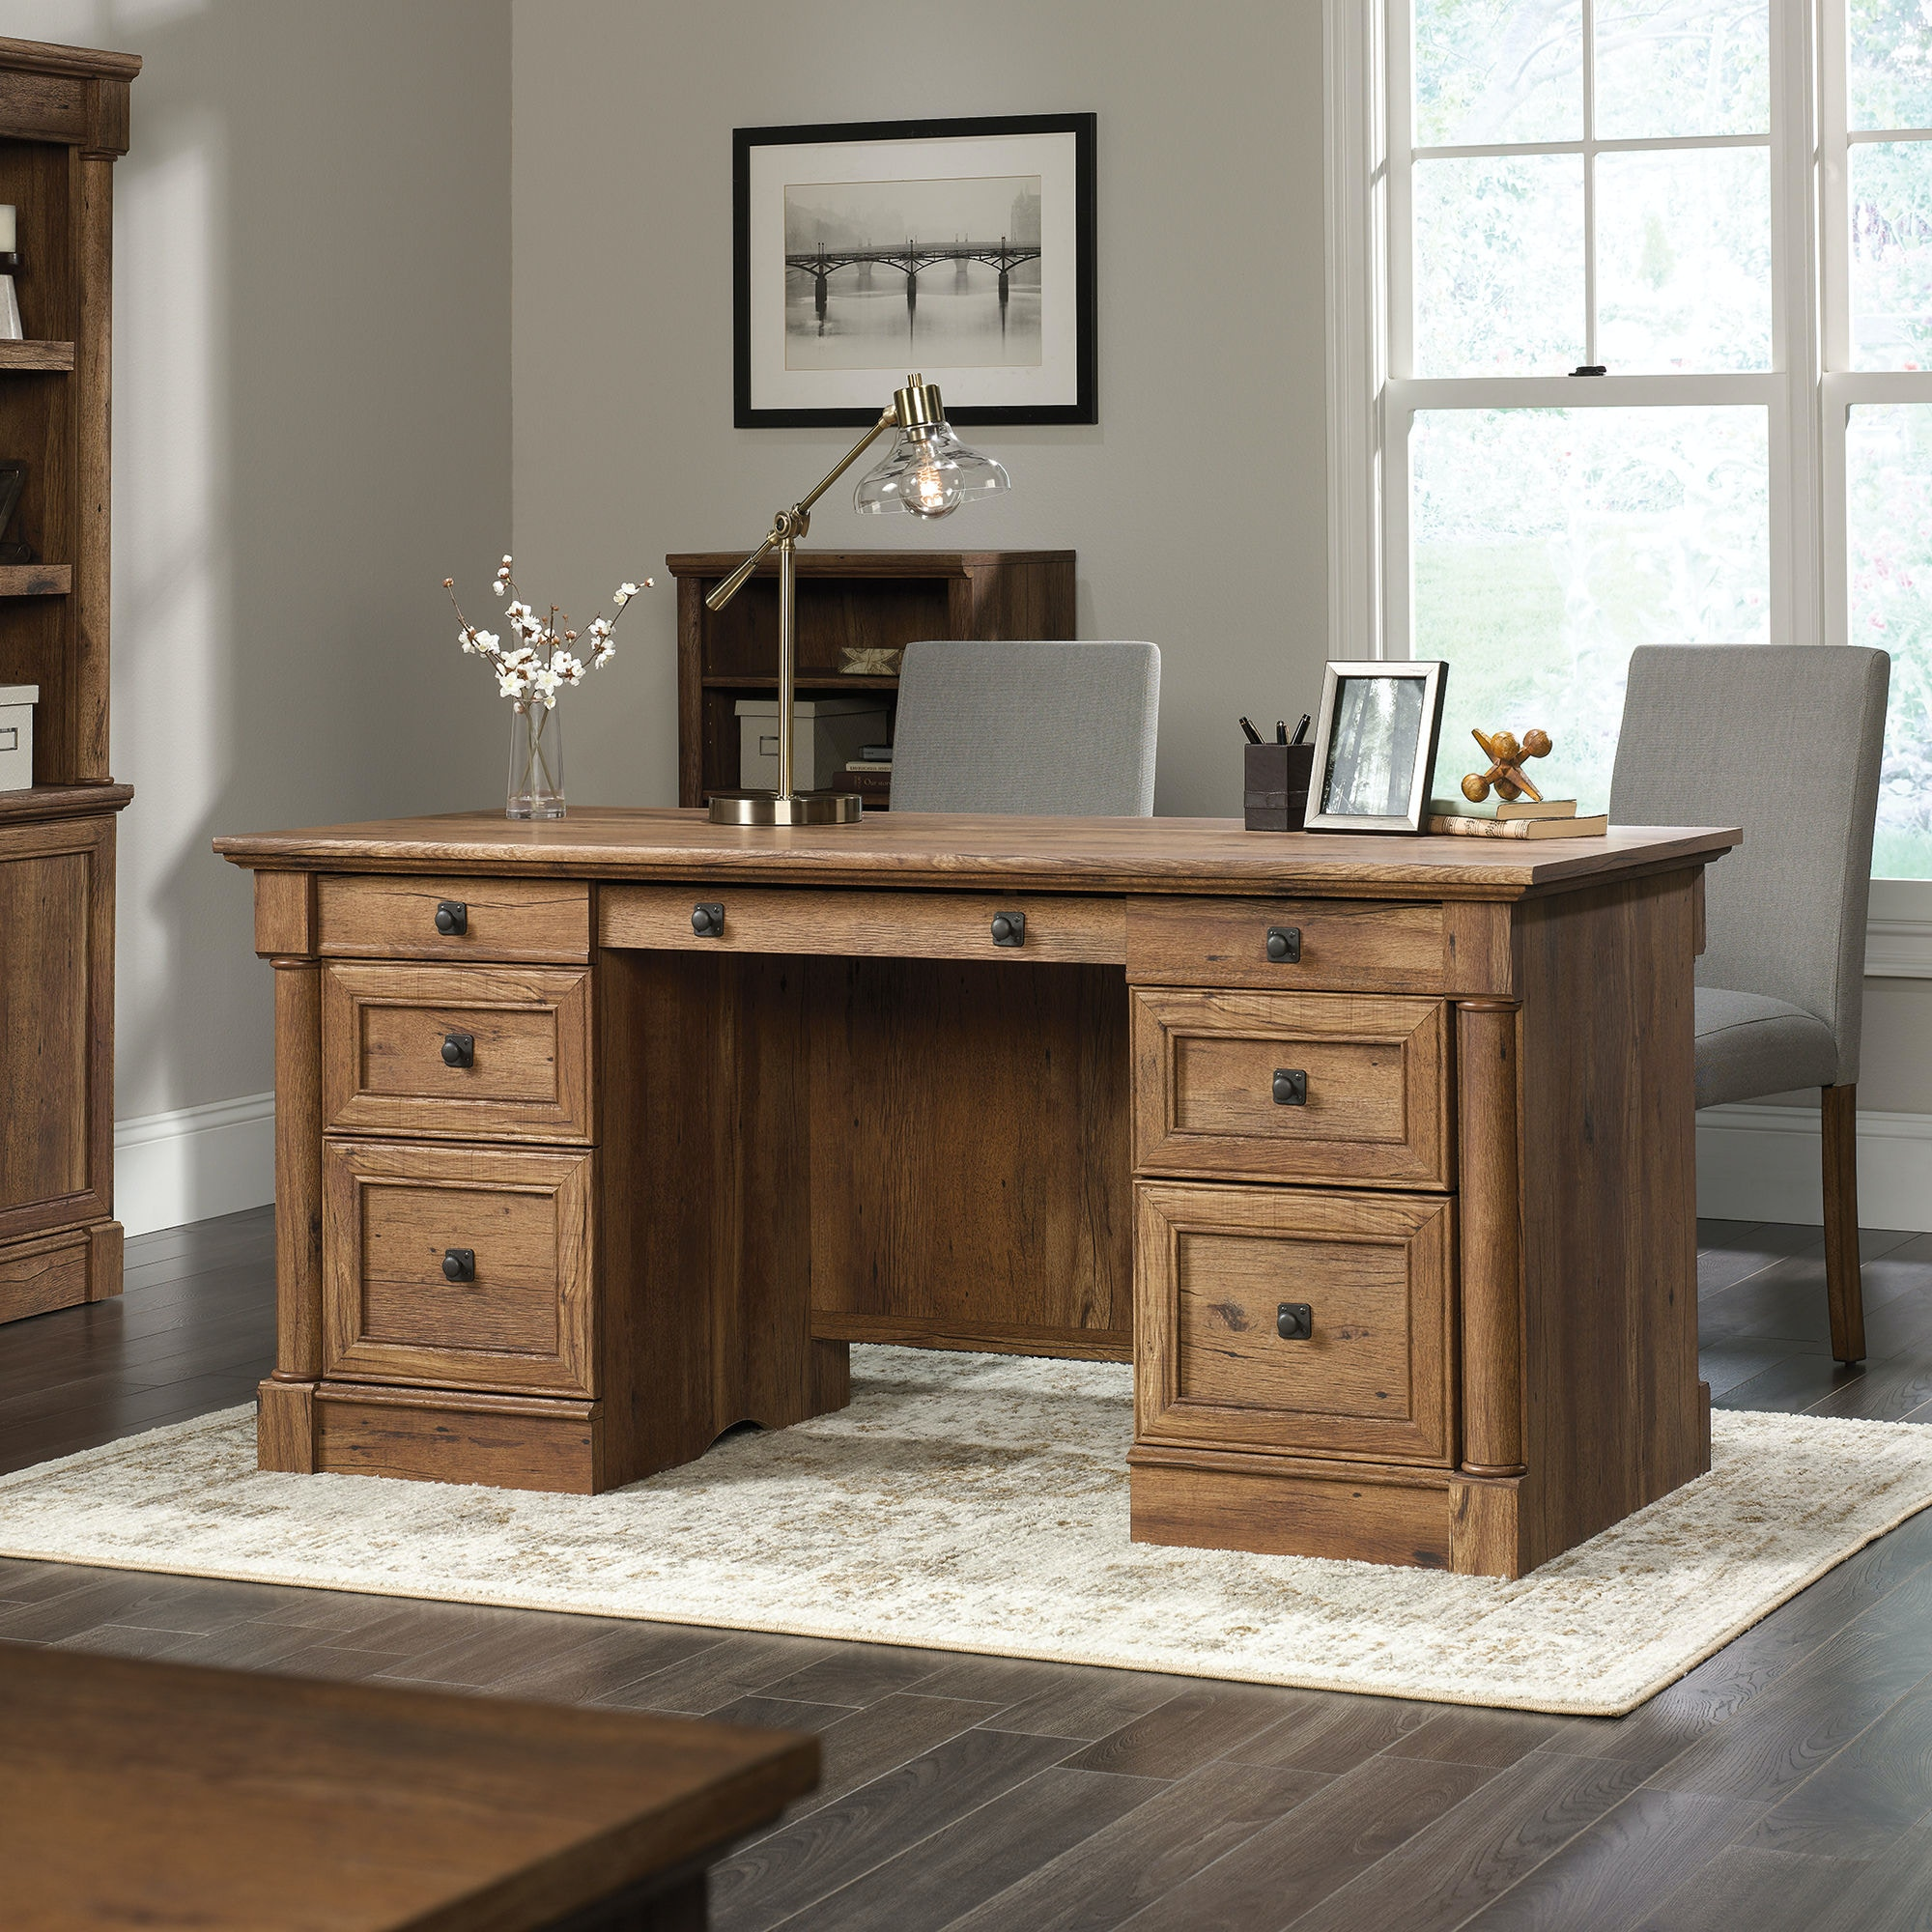 Sauder Home Office Executive Desk 420604 At Fiore Furniture Company